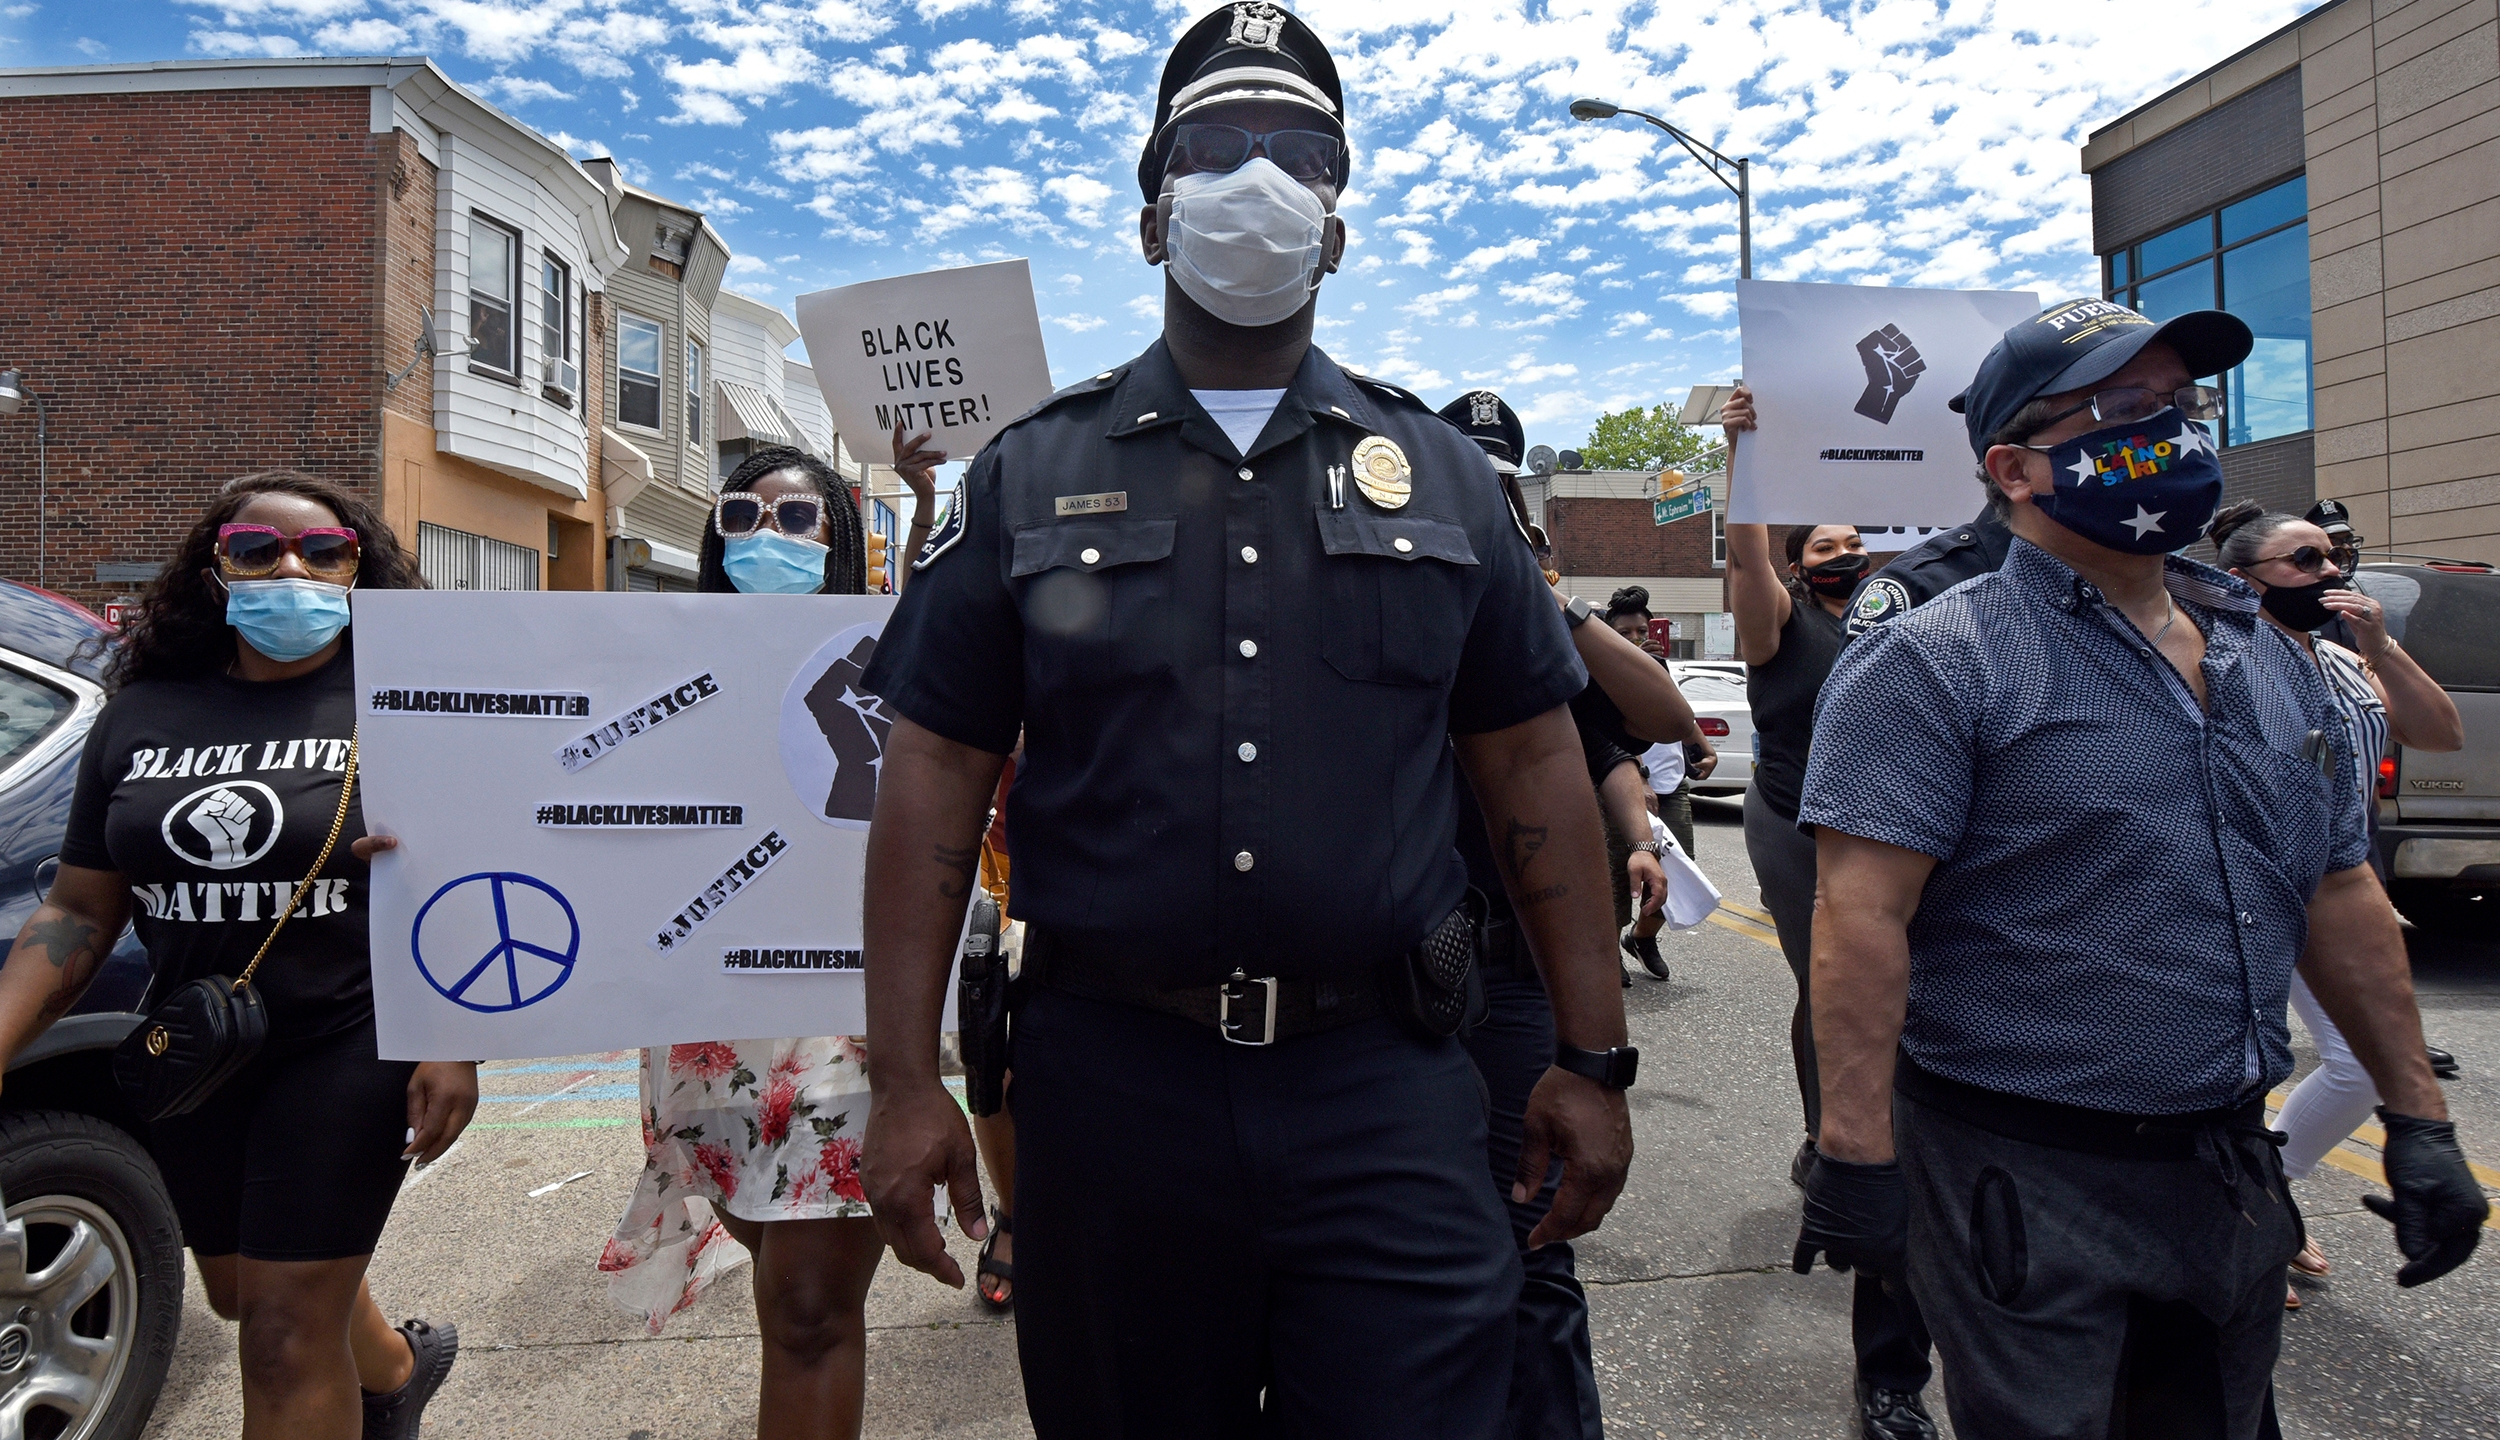 In this May 30, 2020, photo, Lt. Zack James of the Camden County Metro Police Department marches along with demonstrators in Camden, N.J., to protest the death of George Floyd in Minneapolis. (April Saul via CNN)